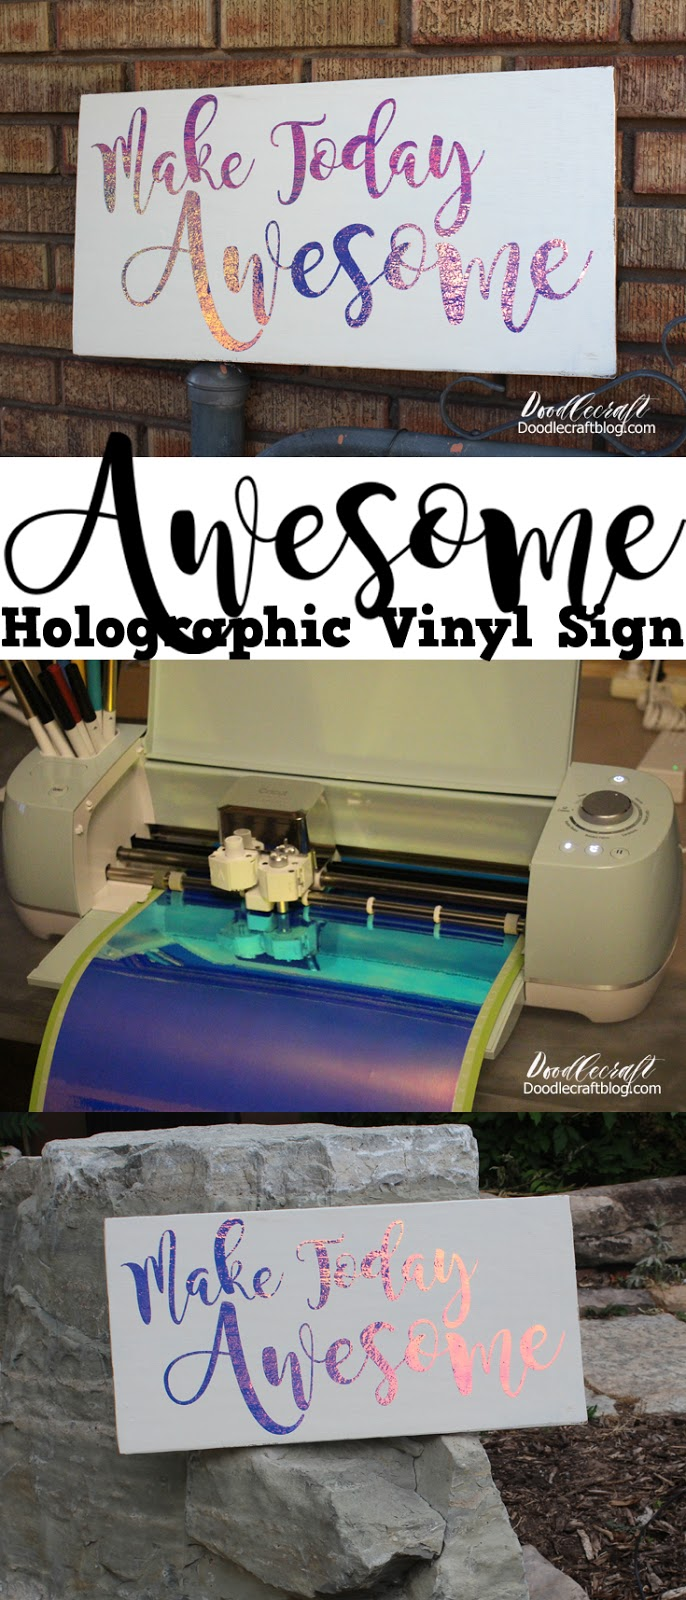 Doodlecraft Cricut Explore Air 2 Make Today Awesome Diy